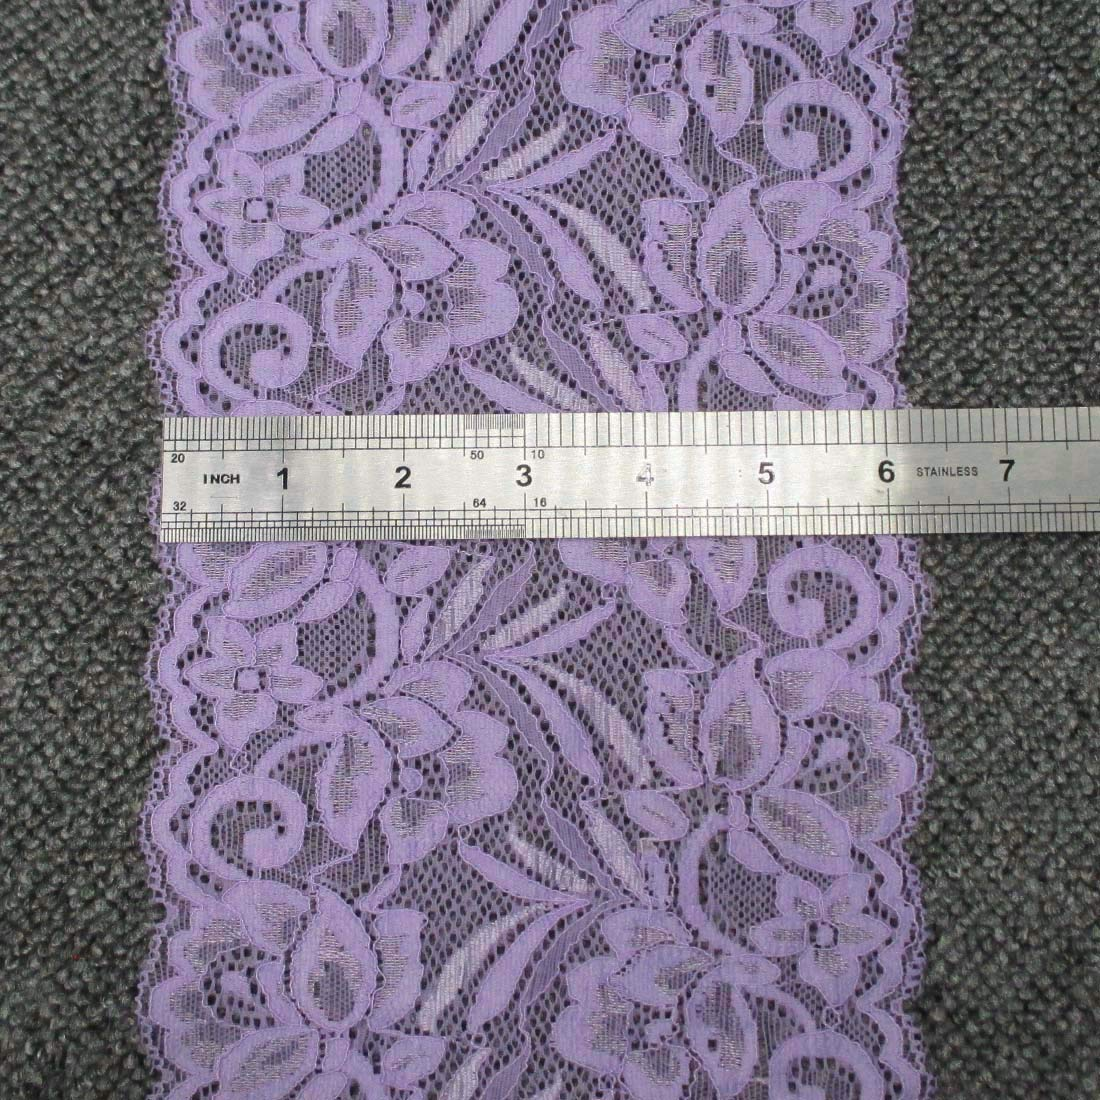 Black 10 yards 6 Inches Wide Stretch Polyester Embroidery Floral Pattern Lace Trimming DTY Craft Supply Clothing Accessories